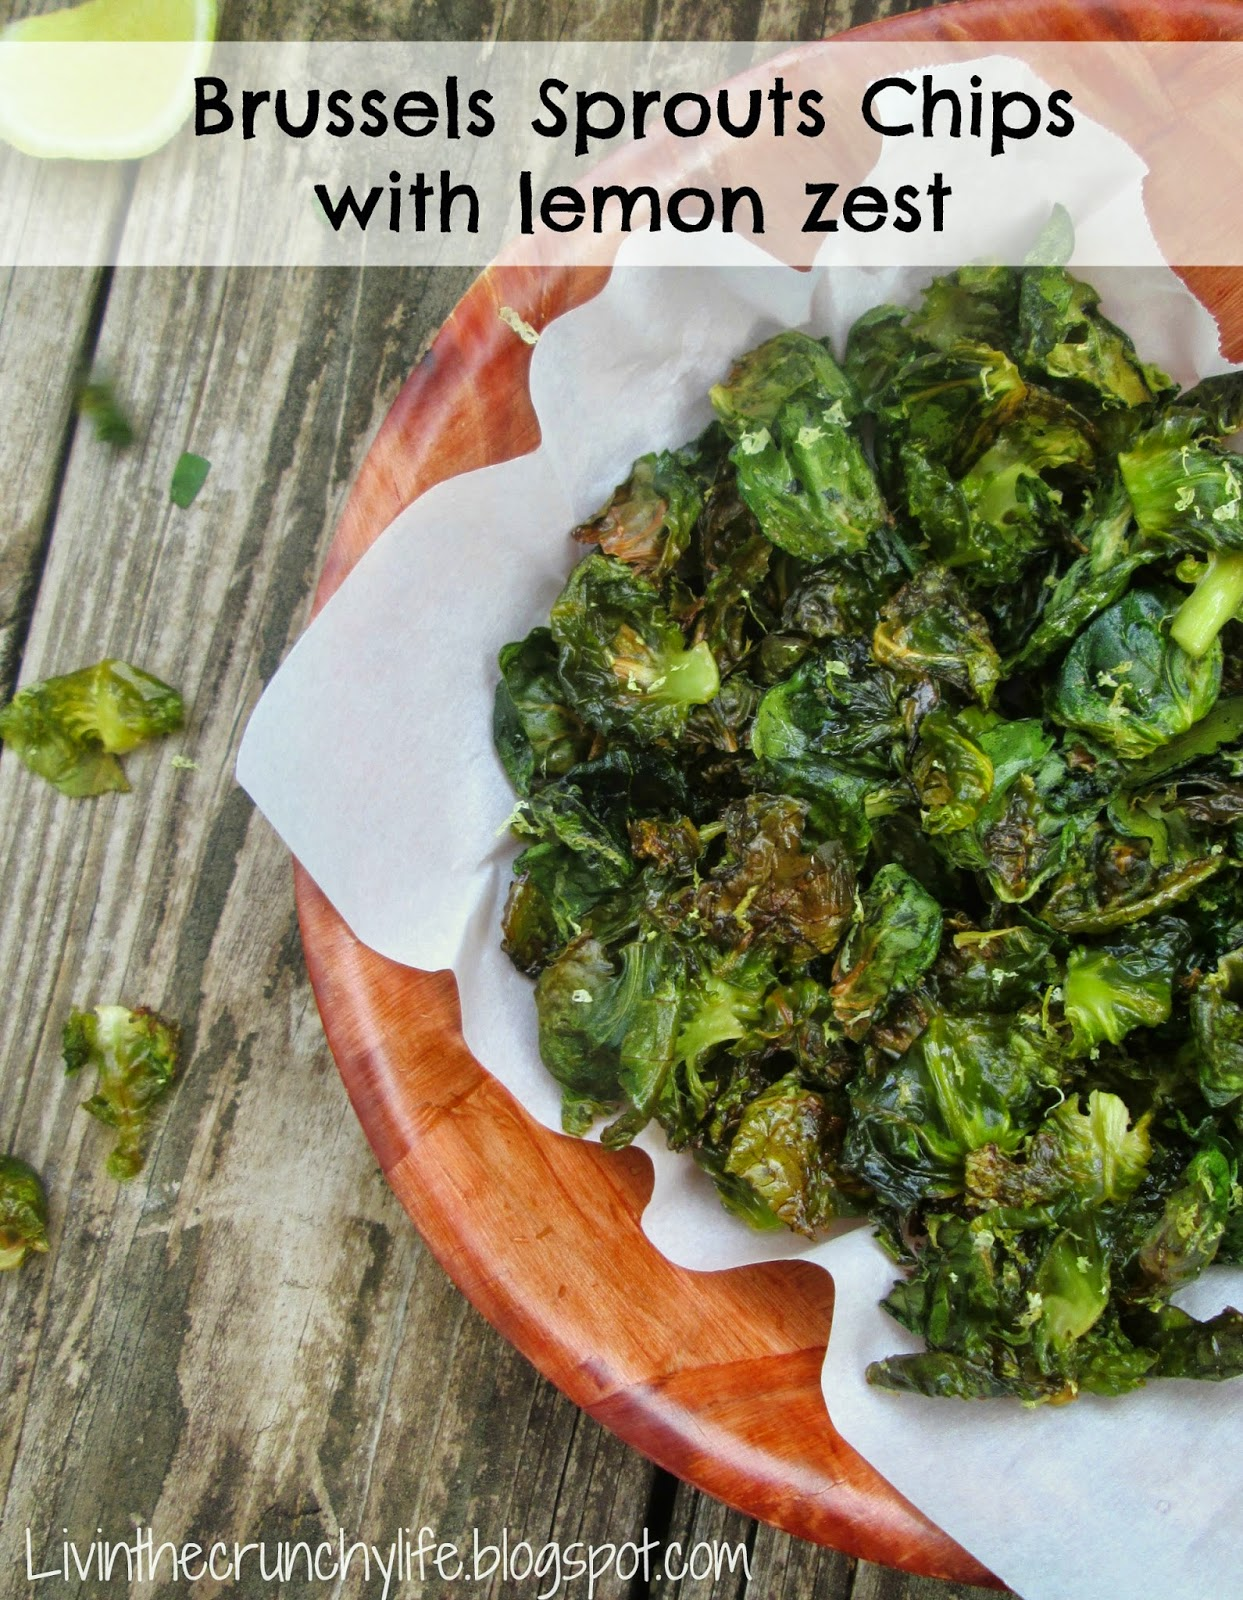 Brussels Sprouts Chips with Lemon Zest